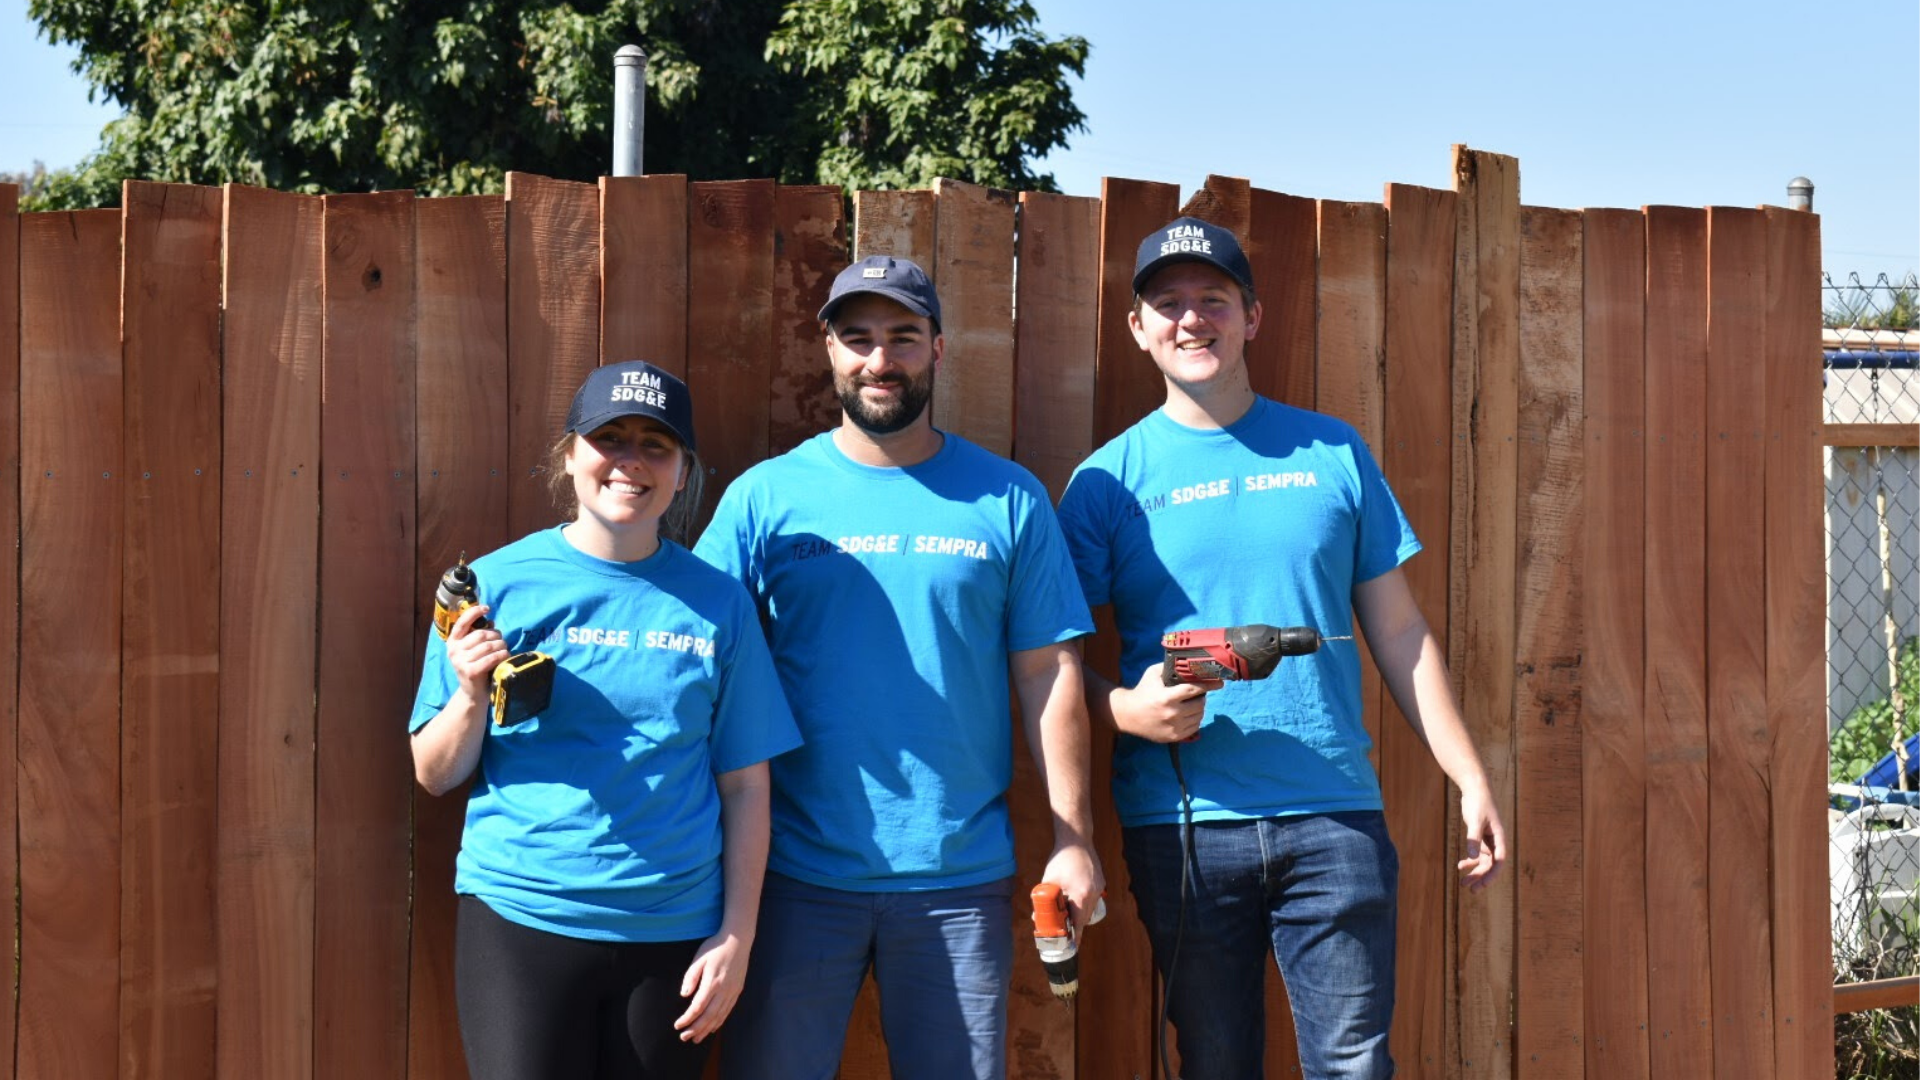 Team SDG&E volunteers pose in front of fence they built at Olivewood Gardens.